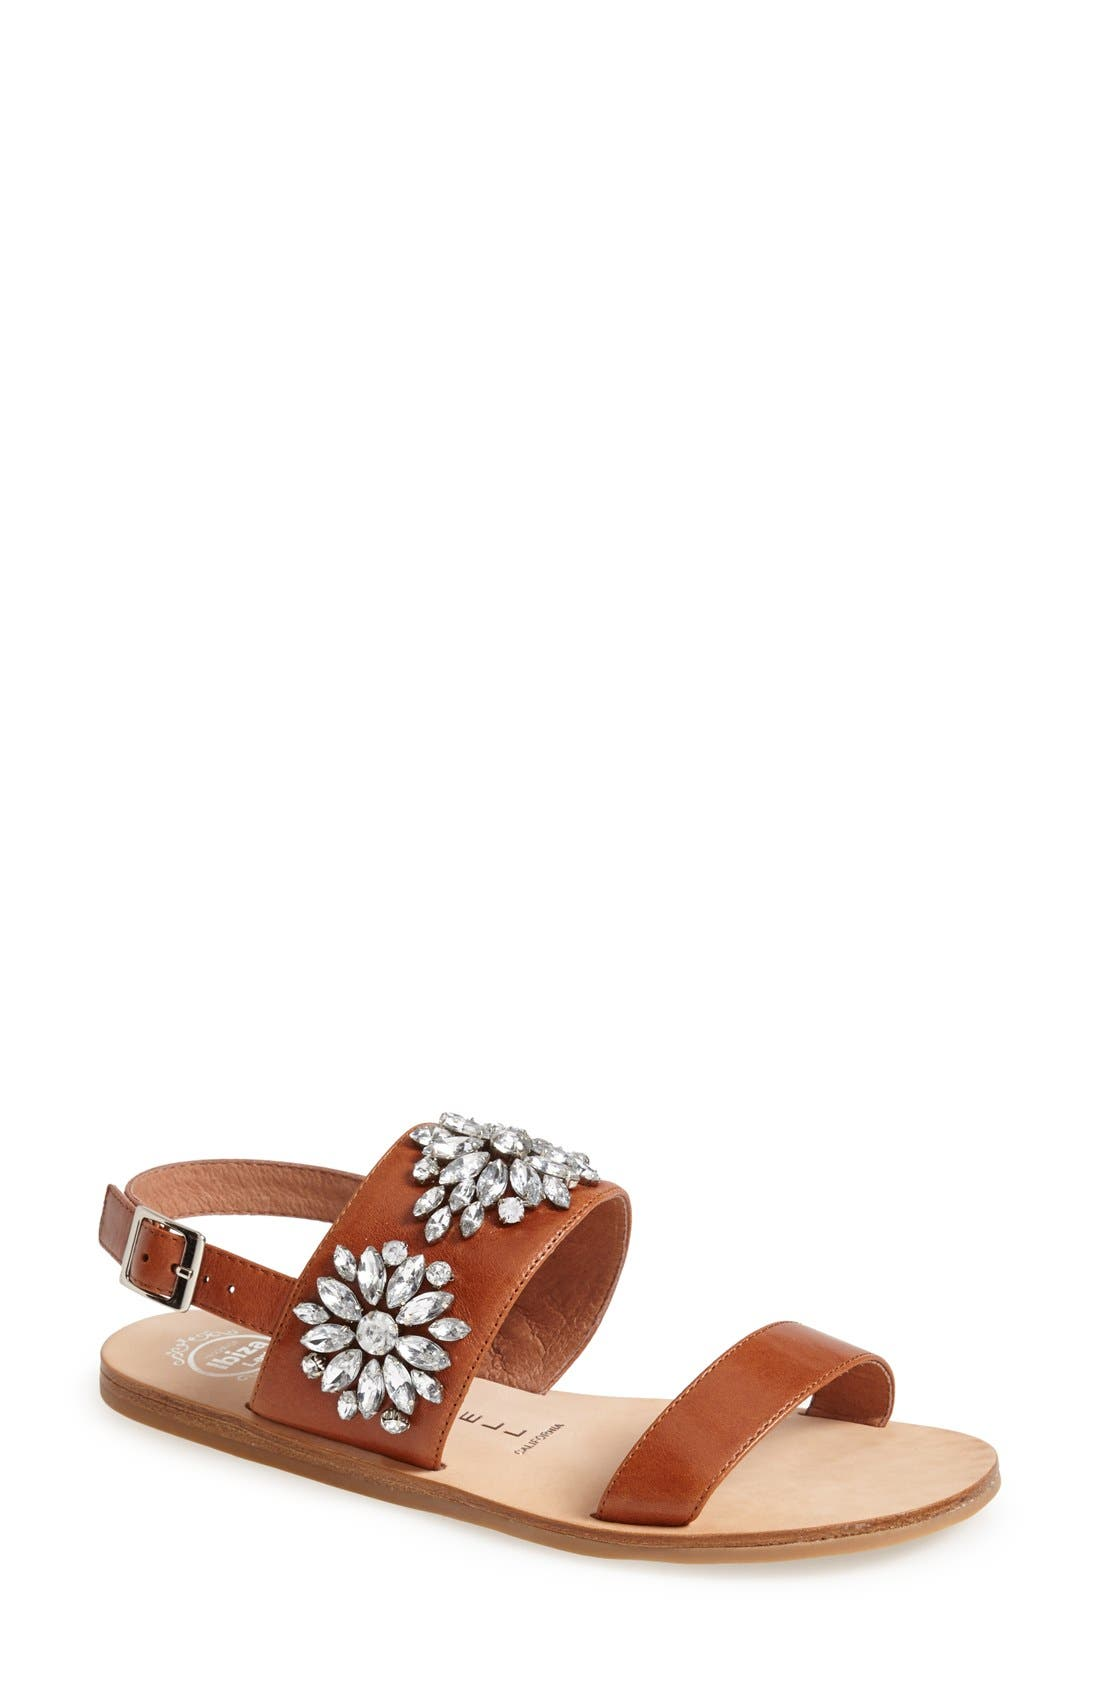 Alternate Image 1 Selected - Jeffrey Campbell 'Dola' Jeweled Leather Sandal (Women)